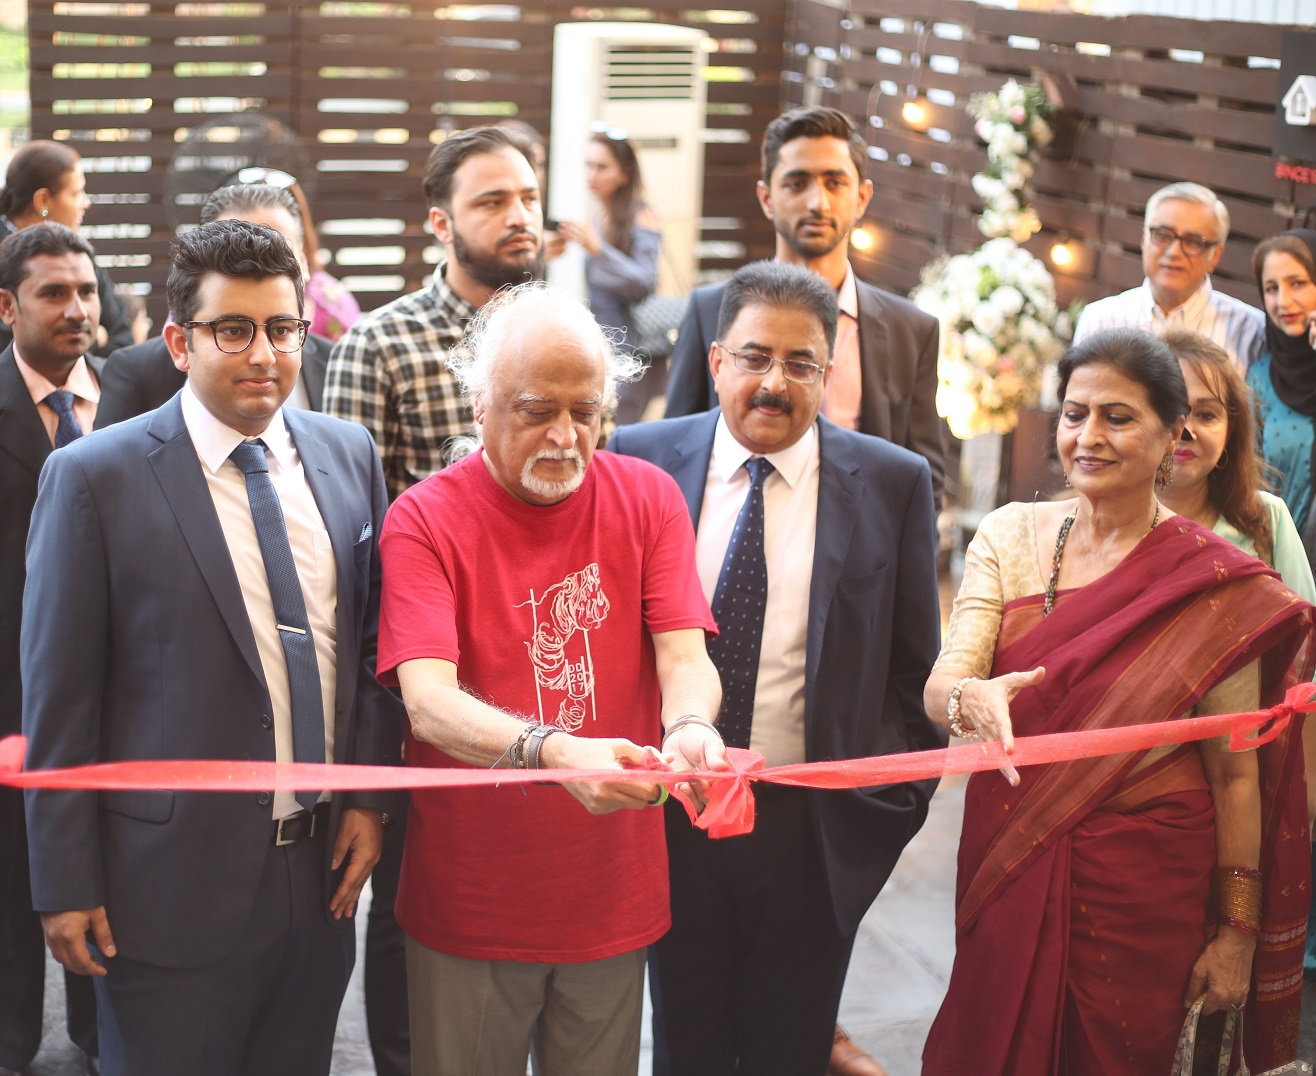 Anwar Maqsood opening J.B. Saeed Home & Hardware Store in Lahore